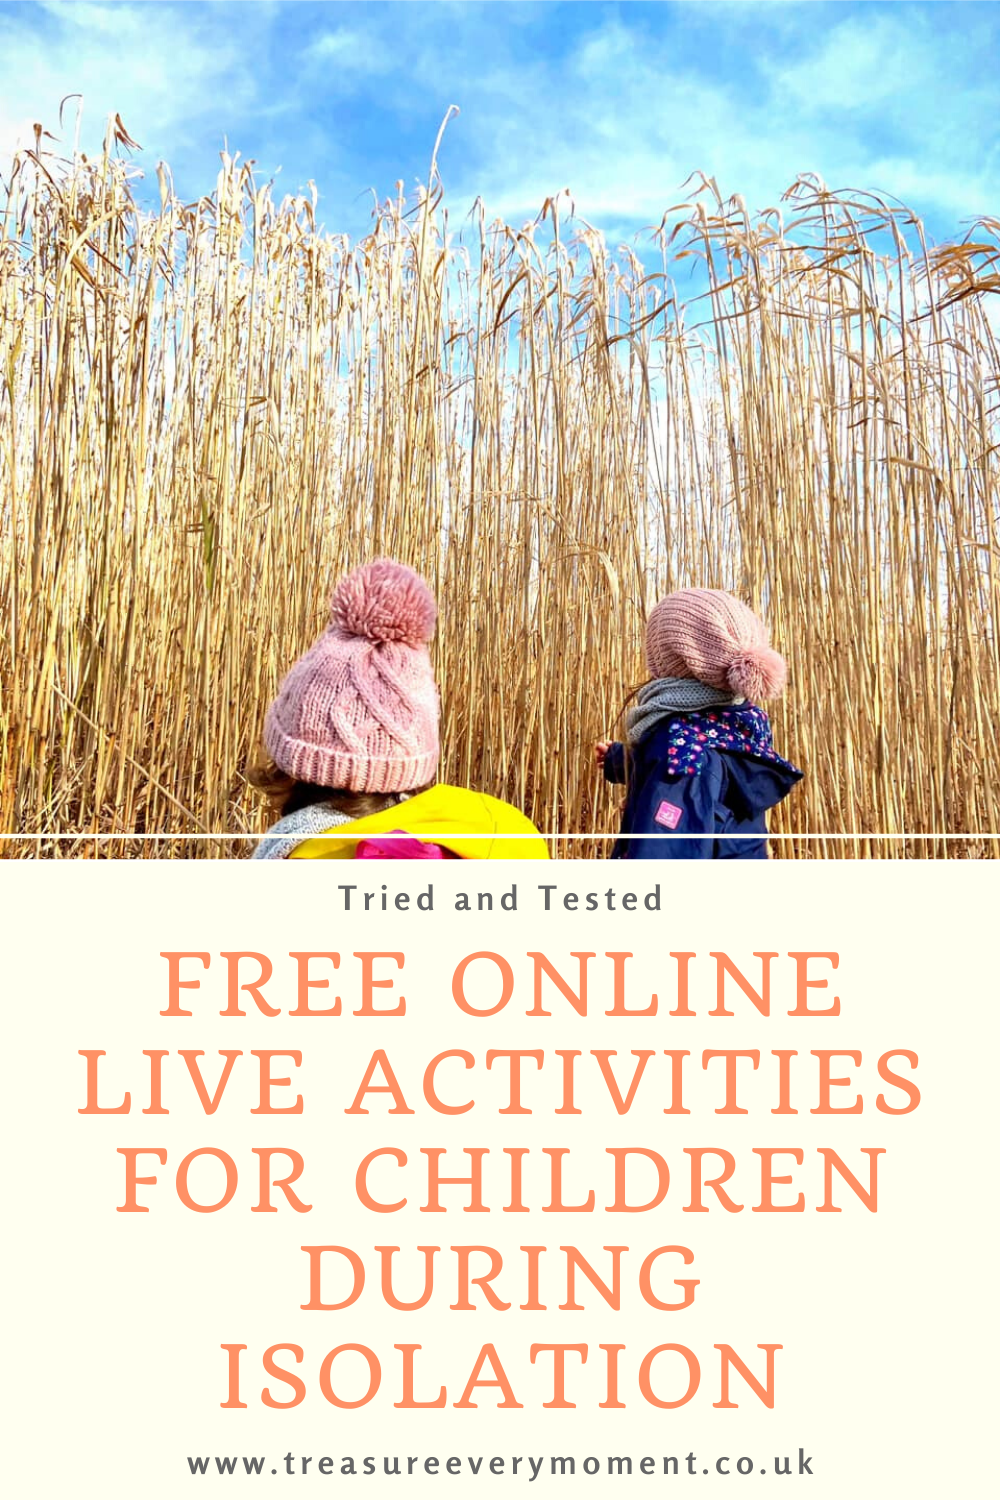 Tried and Tested Free Online Live Activities for Children during Isolation